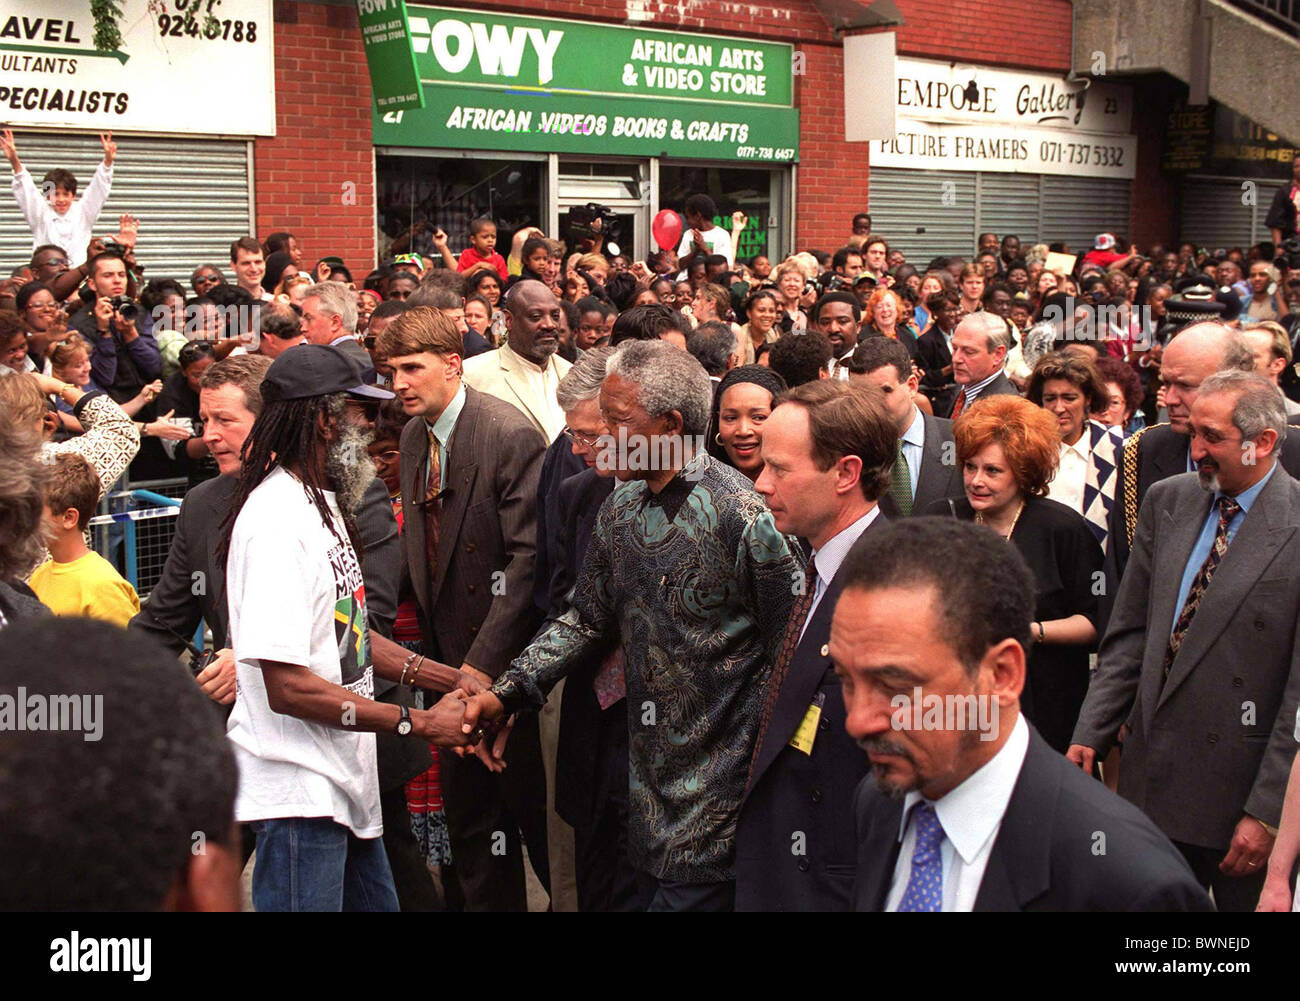 NELSON MANDELA IN BRIXTON, LONDON AT THE END OF HIS STATE VISIT TO BRITAIN - Stock Image